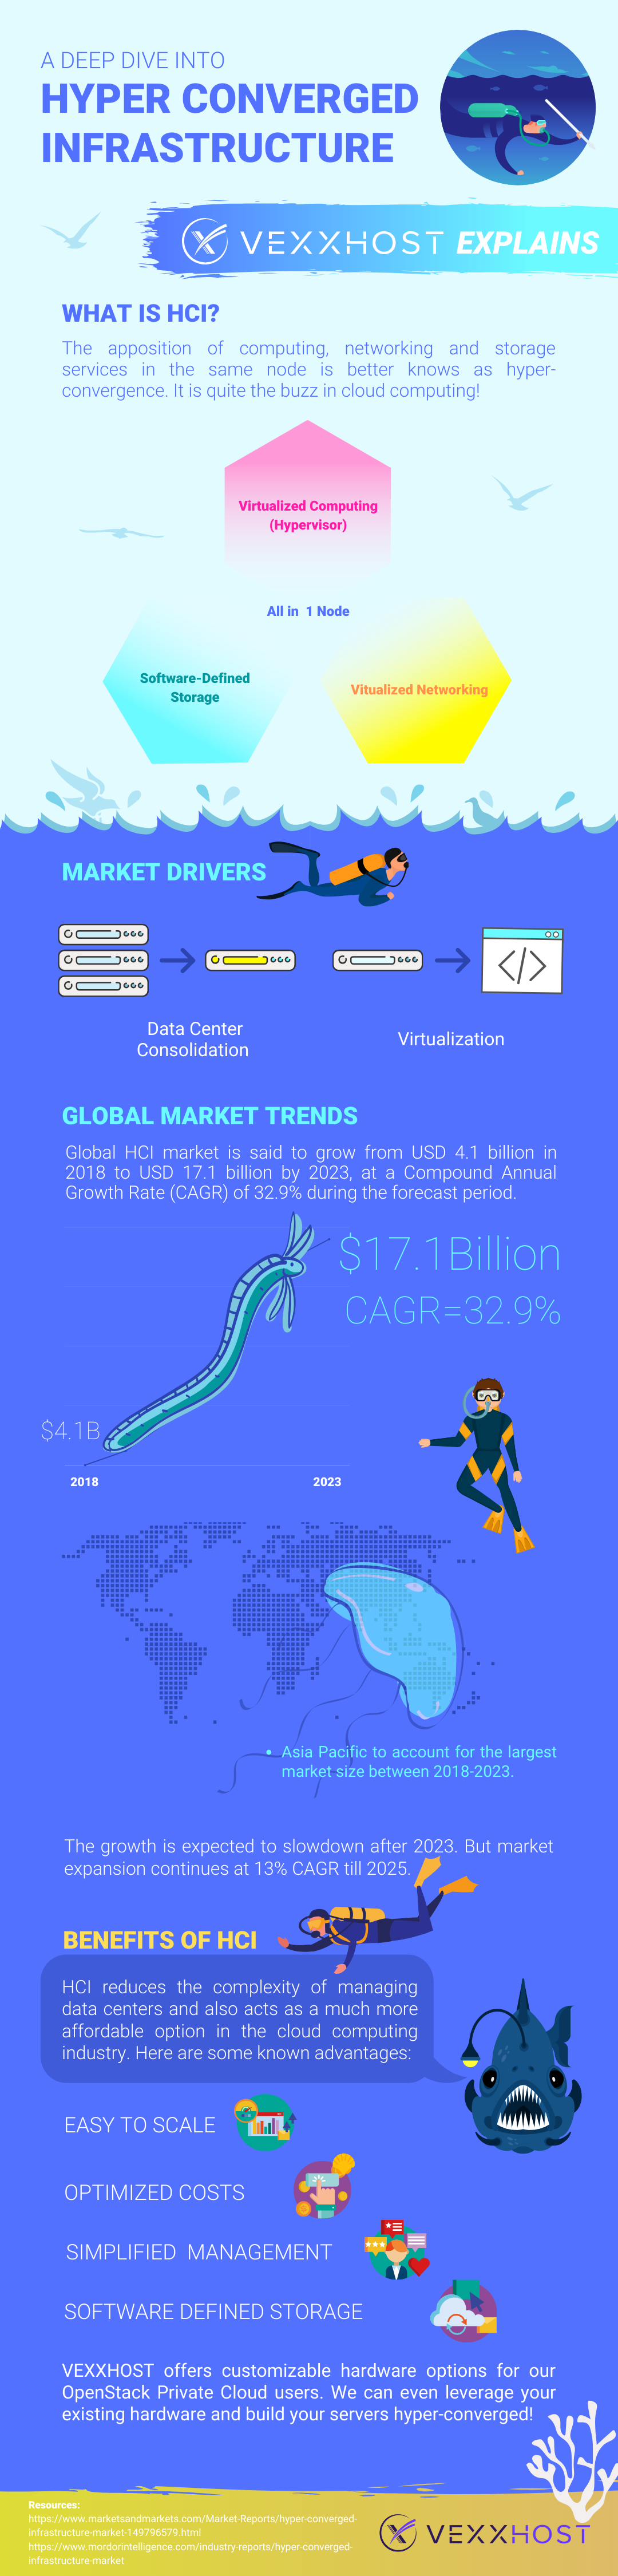 hyper converged infrastructure infographic